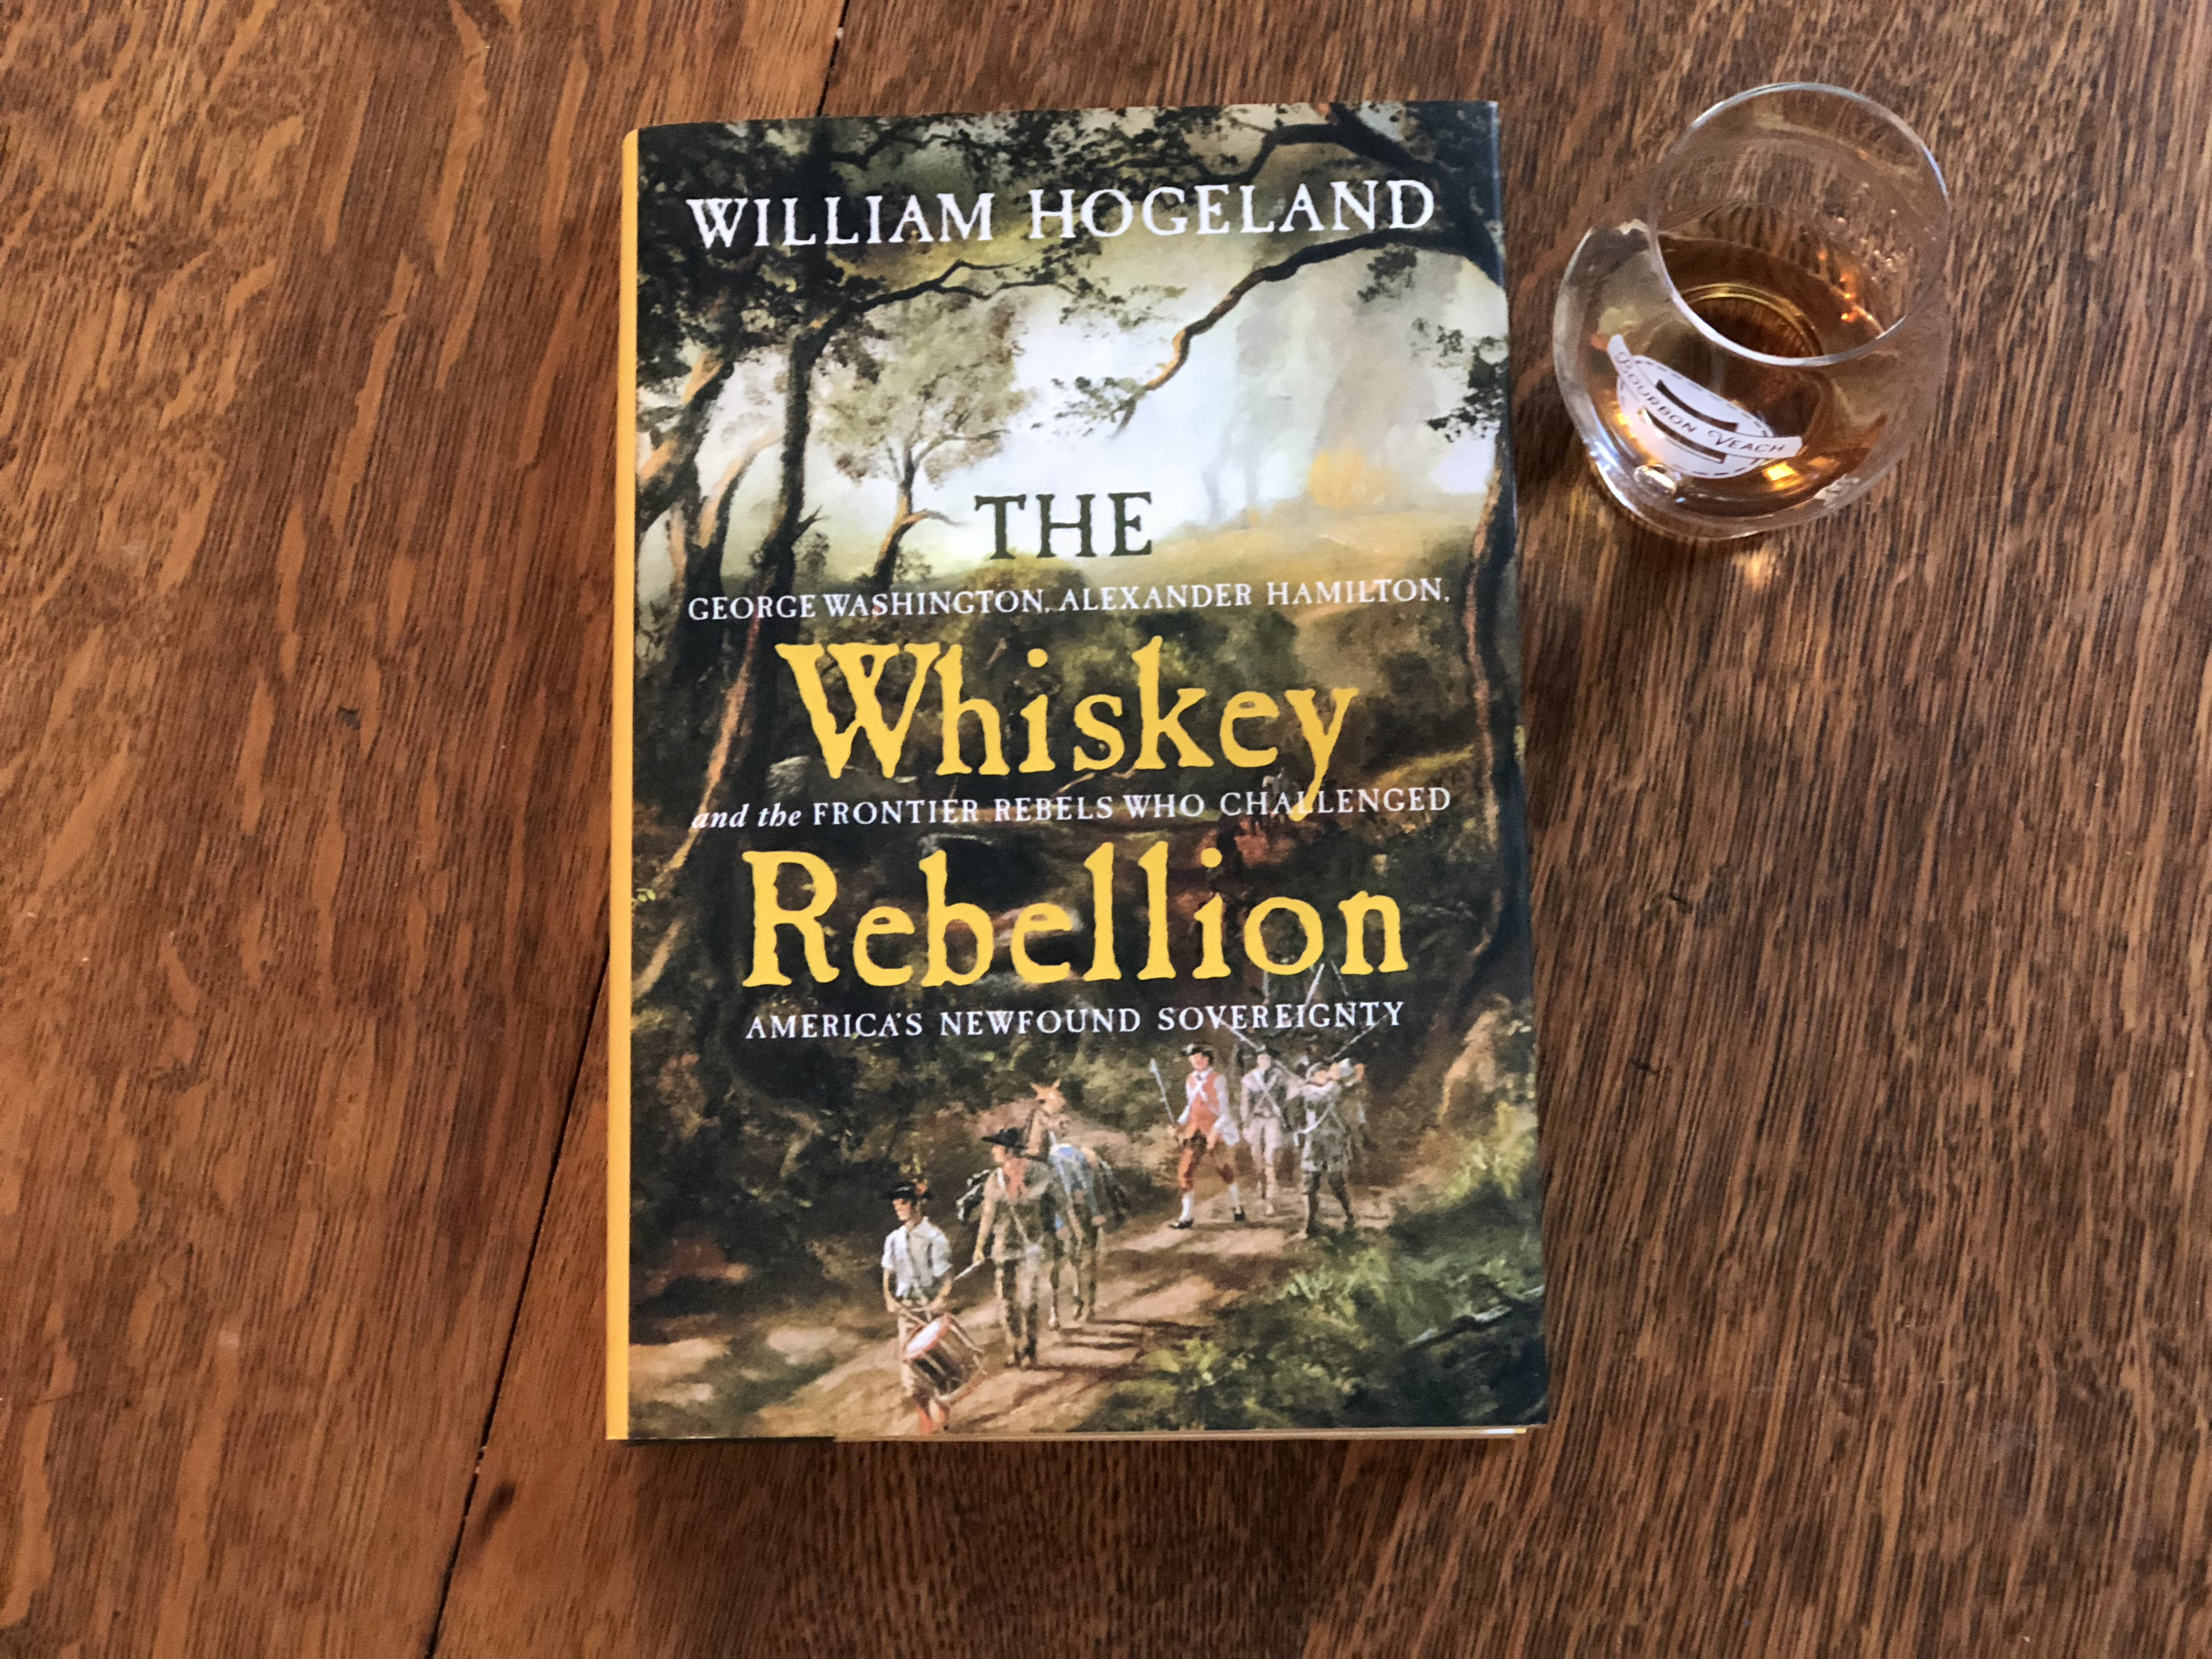 Alexander Hamilton The Whiskey Rebellion and the Frontier Rebels Who Challenged Americas Newfound Sovereignty George Washington